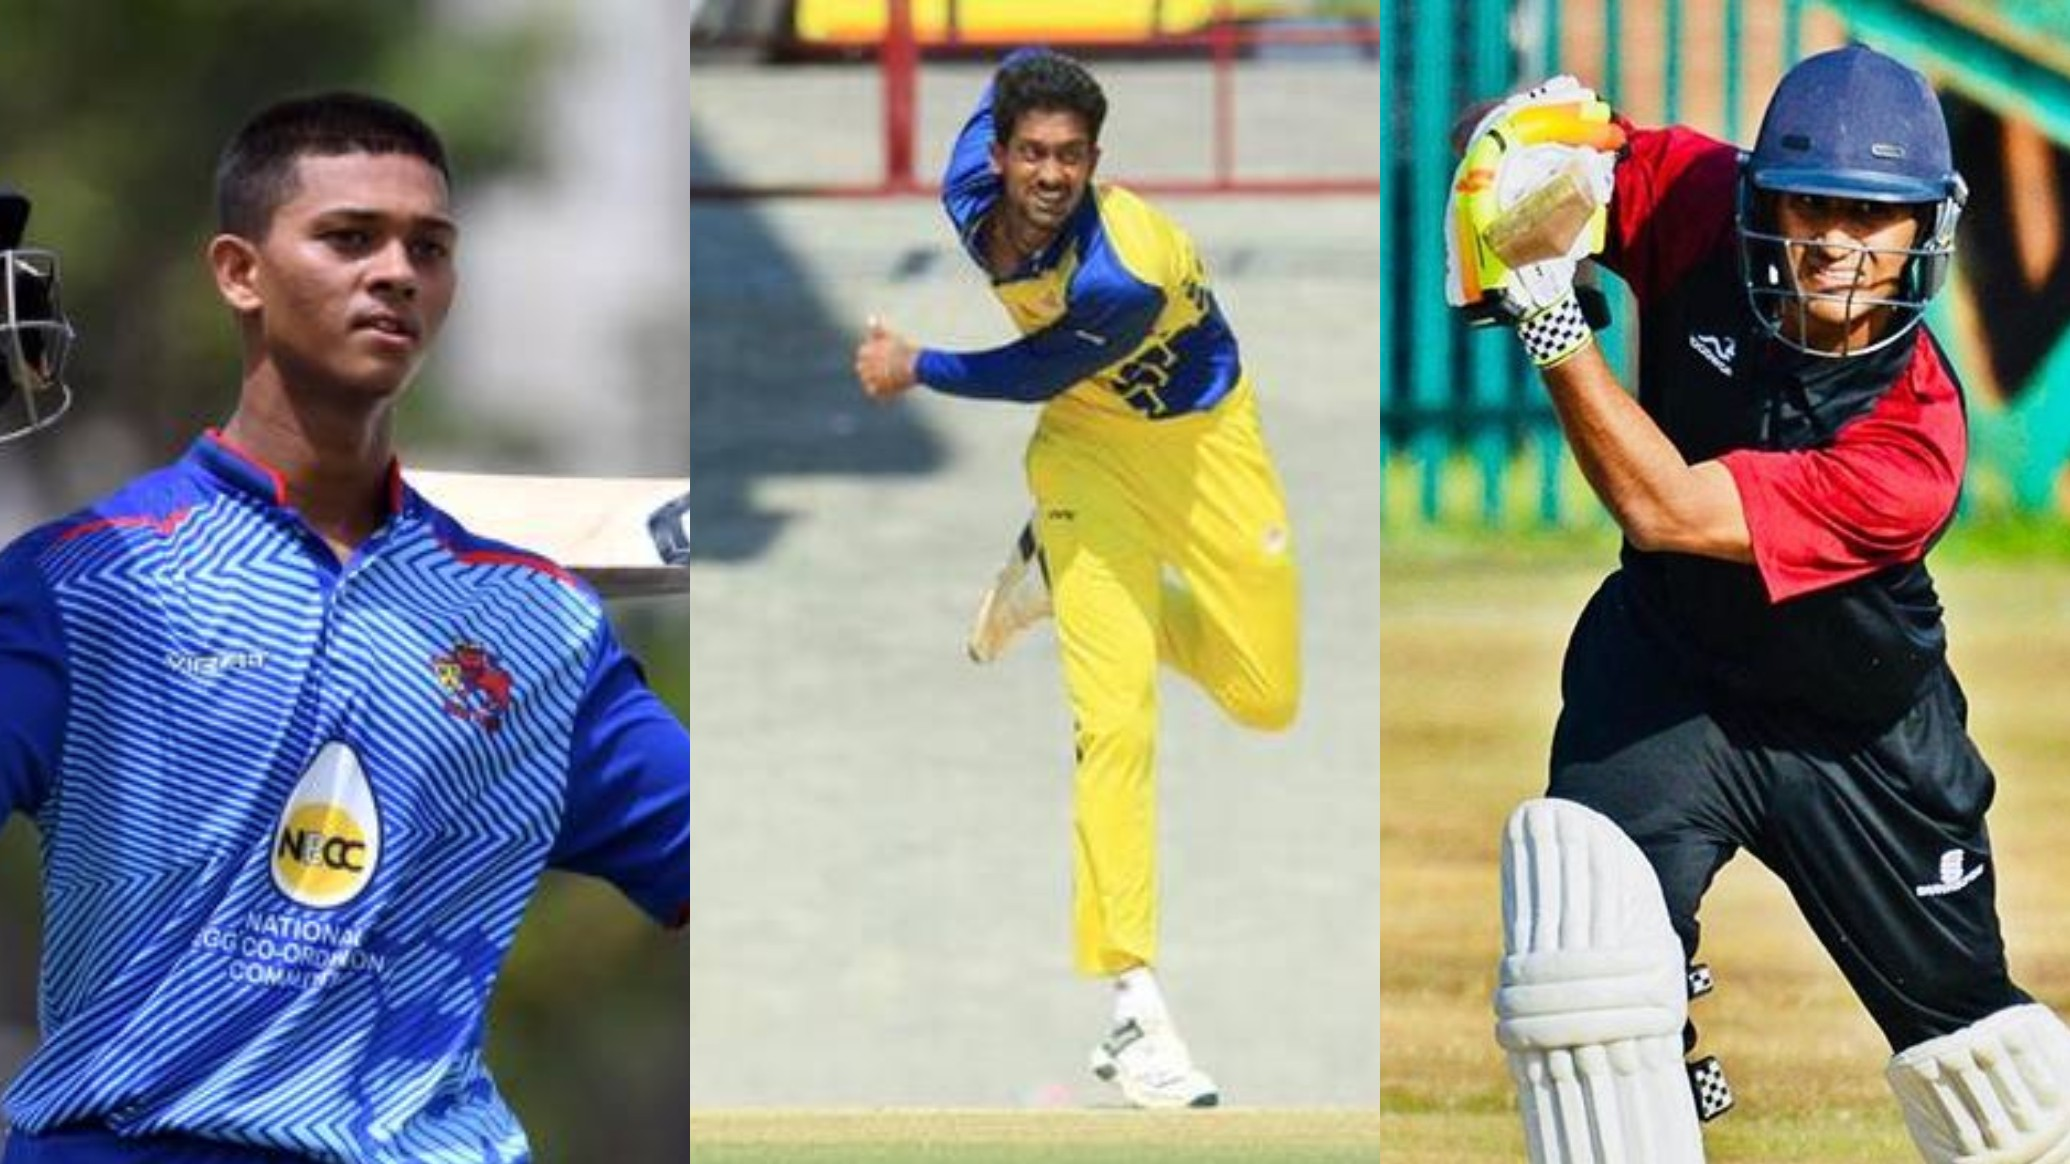 IPL 2020: 5 exciting young Indian players to watch out for in upcoming auction